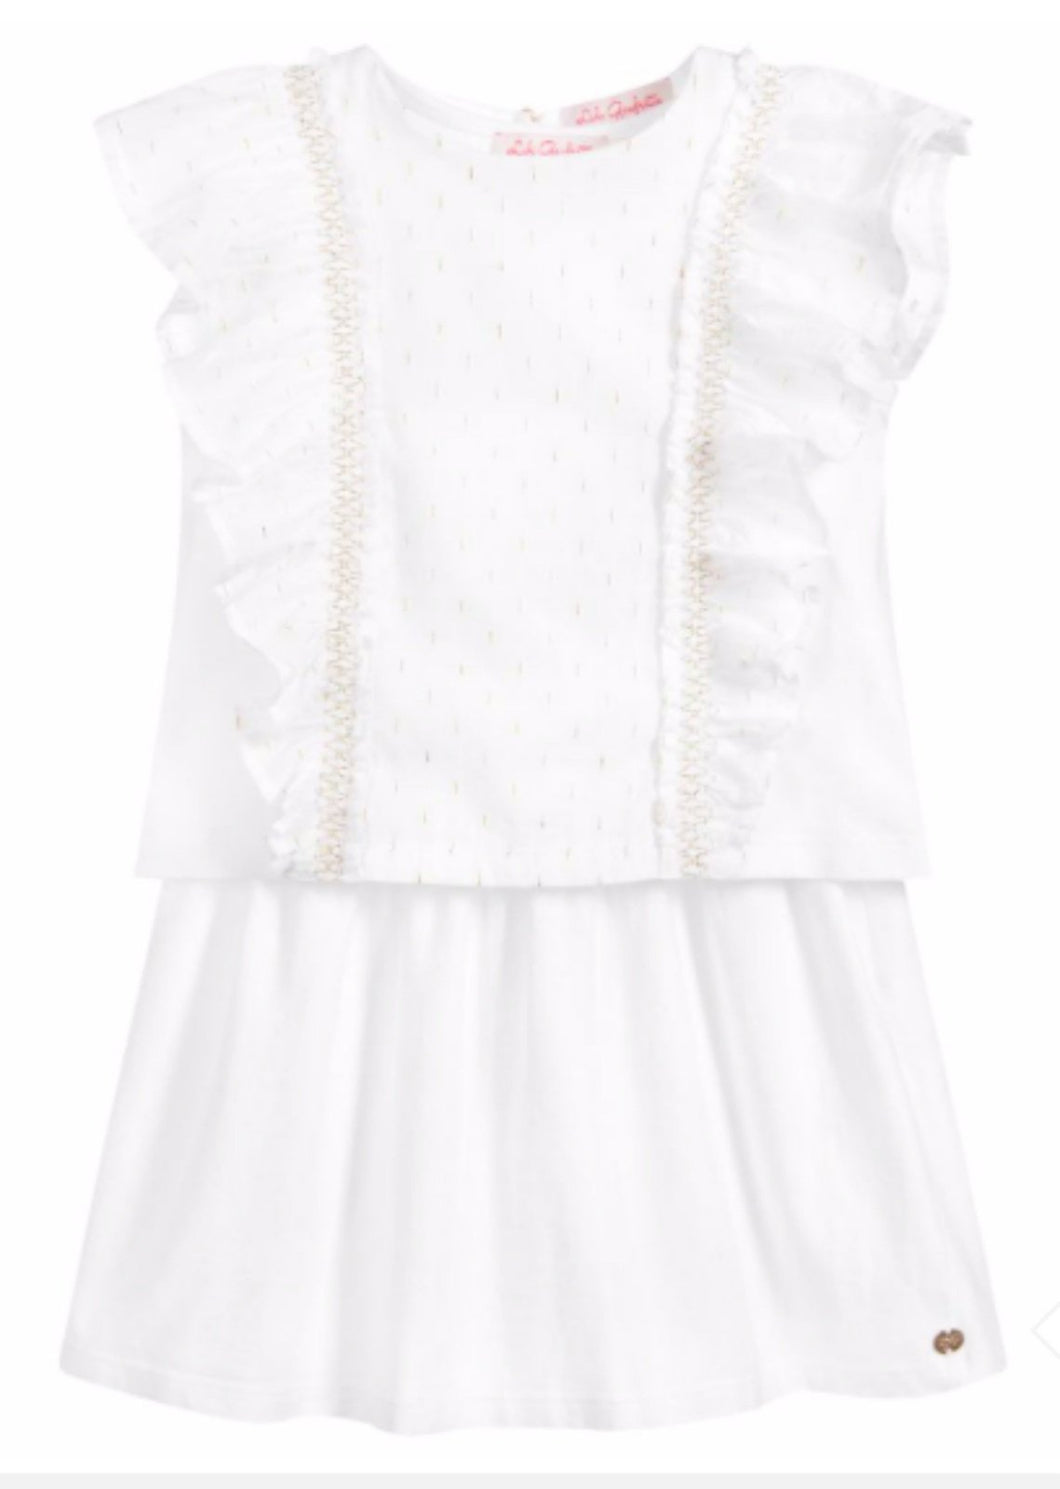 Honeypiekids | Lili Gaufrette Girls White and Gold Two Piece Dress Set